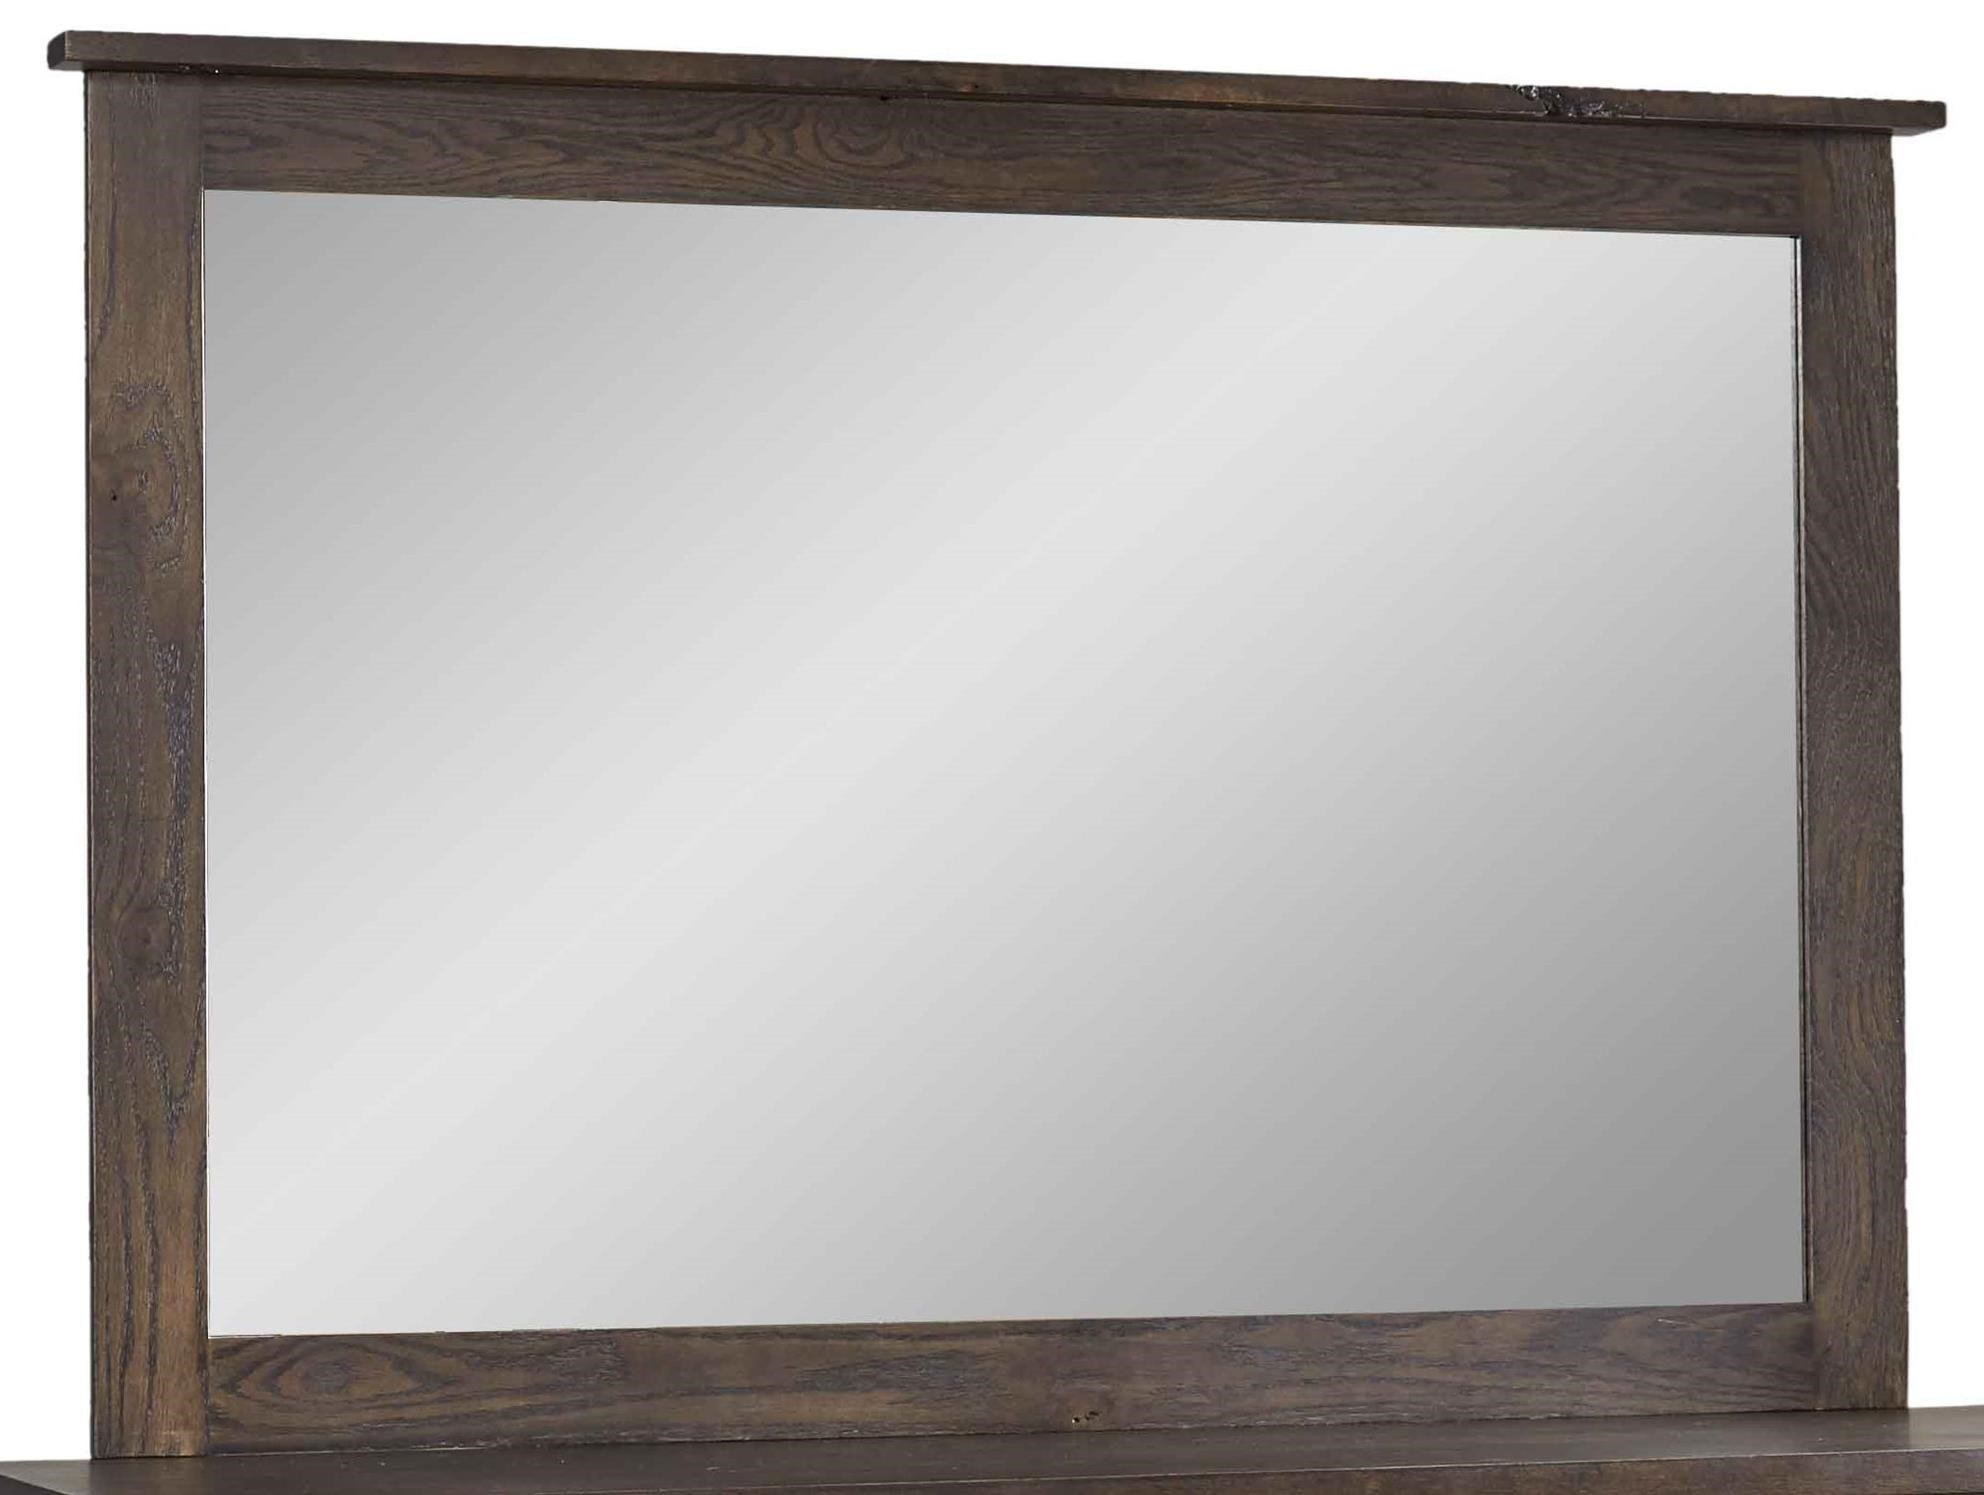 Homestead Mirror by Daniel's Amish at Saugerties Furniture Mart